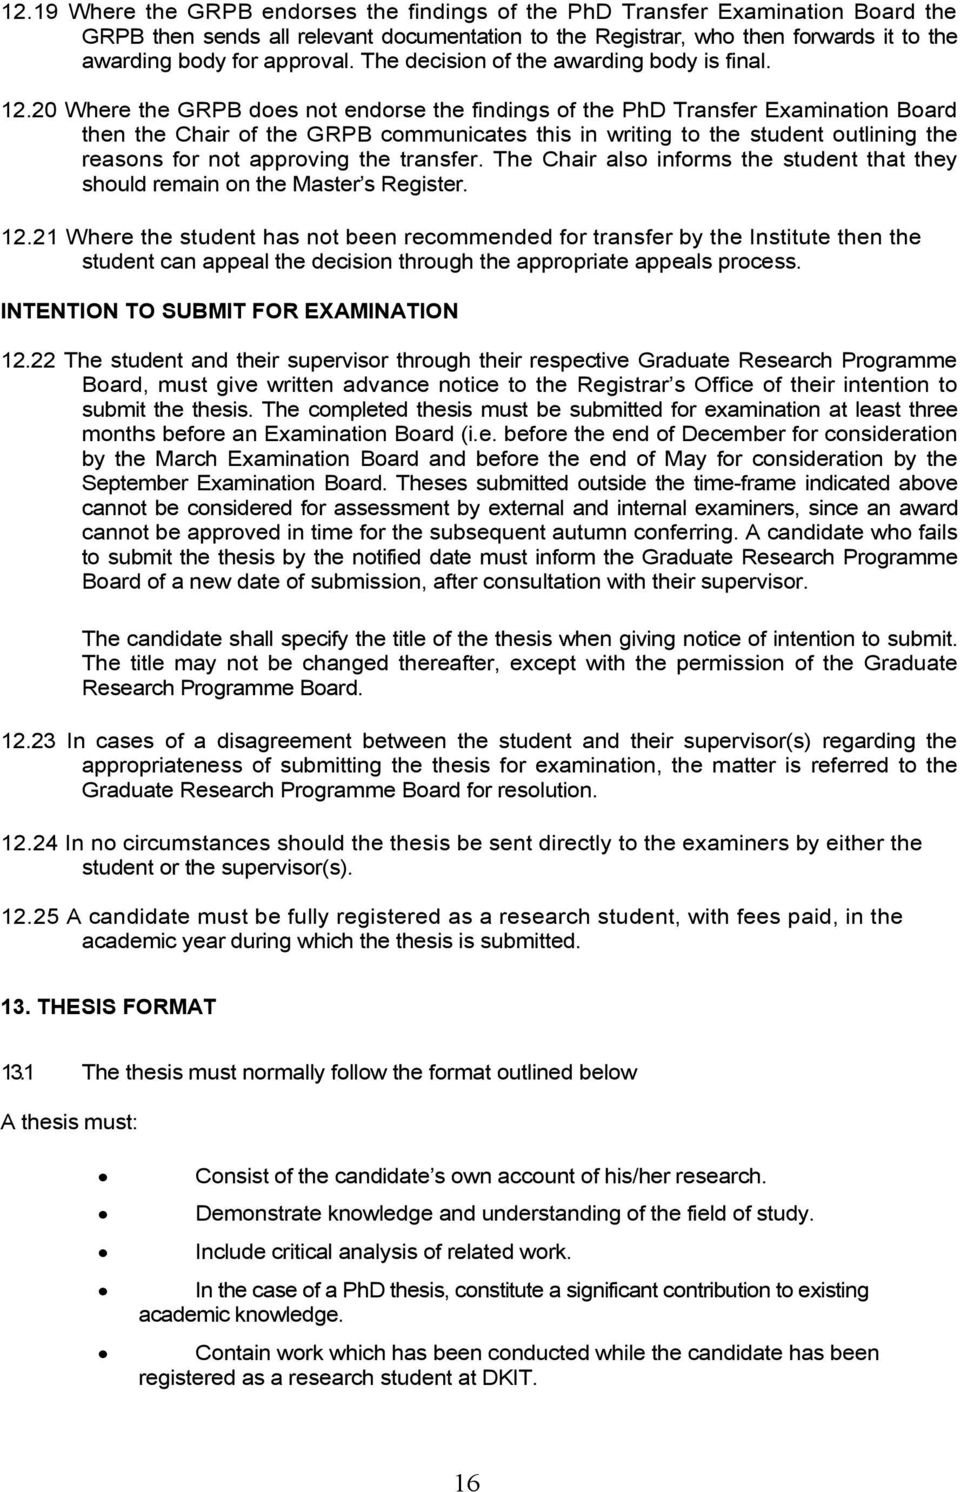 20 Where the GRPB does not endorse the findings of the PhD Transfer Examination Board then the Chair of the GRPB communicates this in writing to the student outlining the reasons for not approving